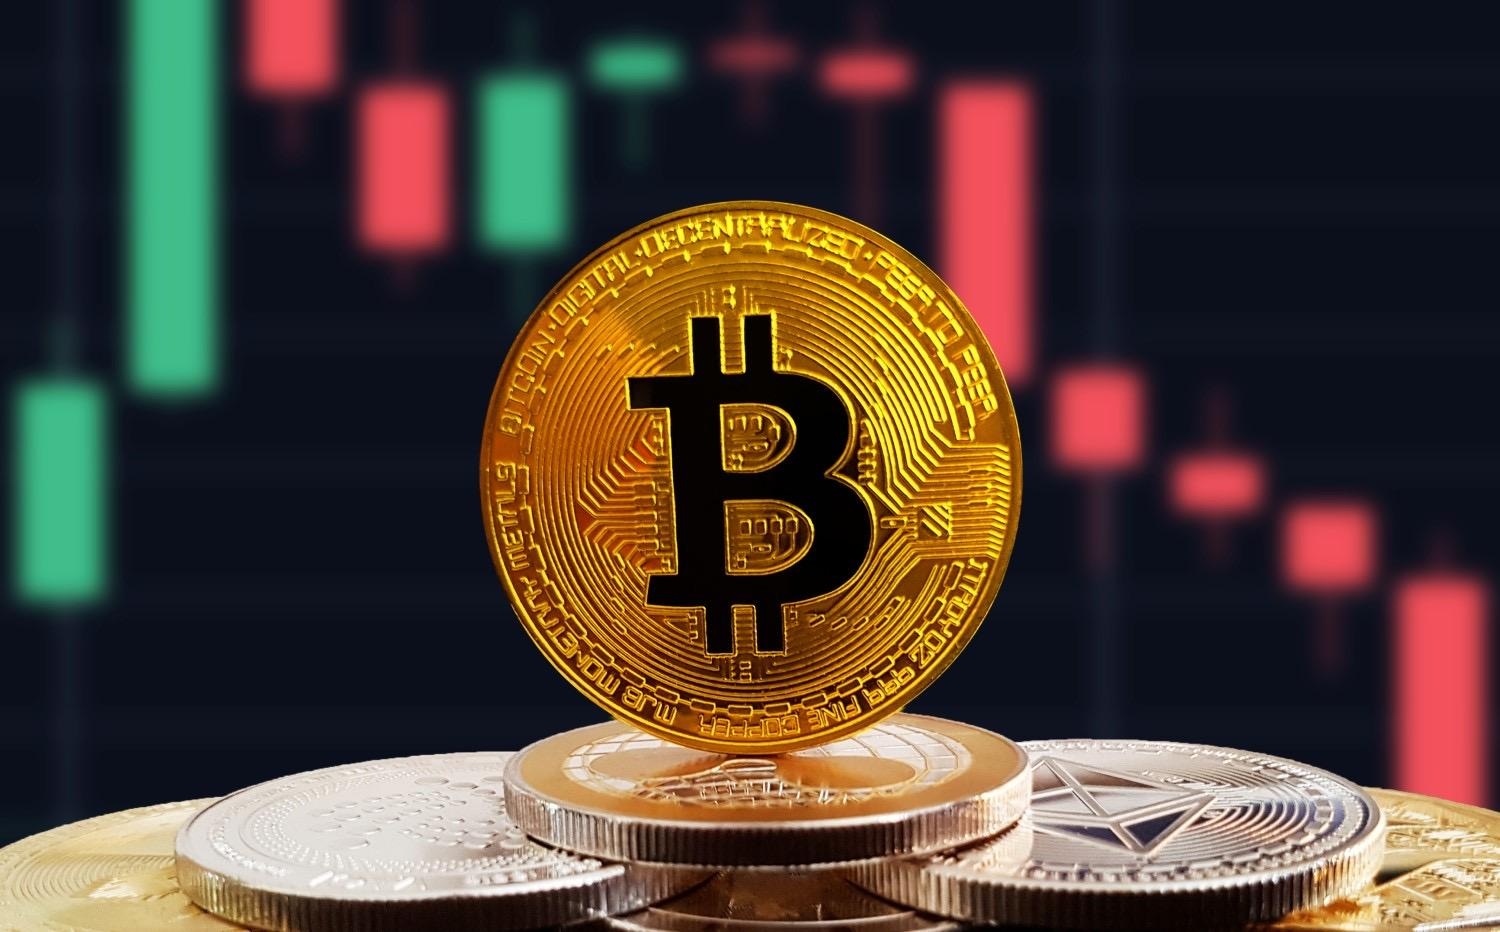 Twitter Adds Crypto, Amid Bitcoin Surges